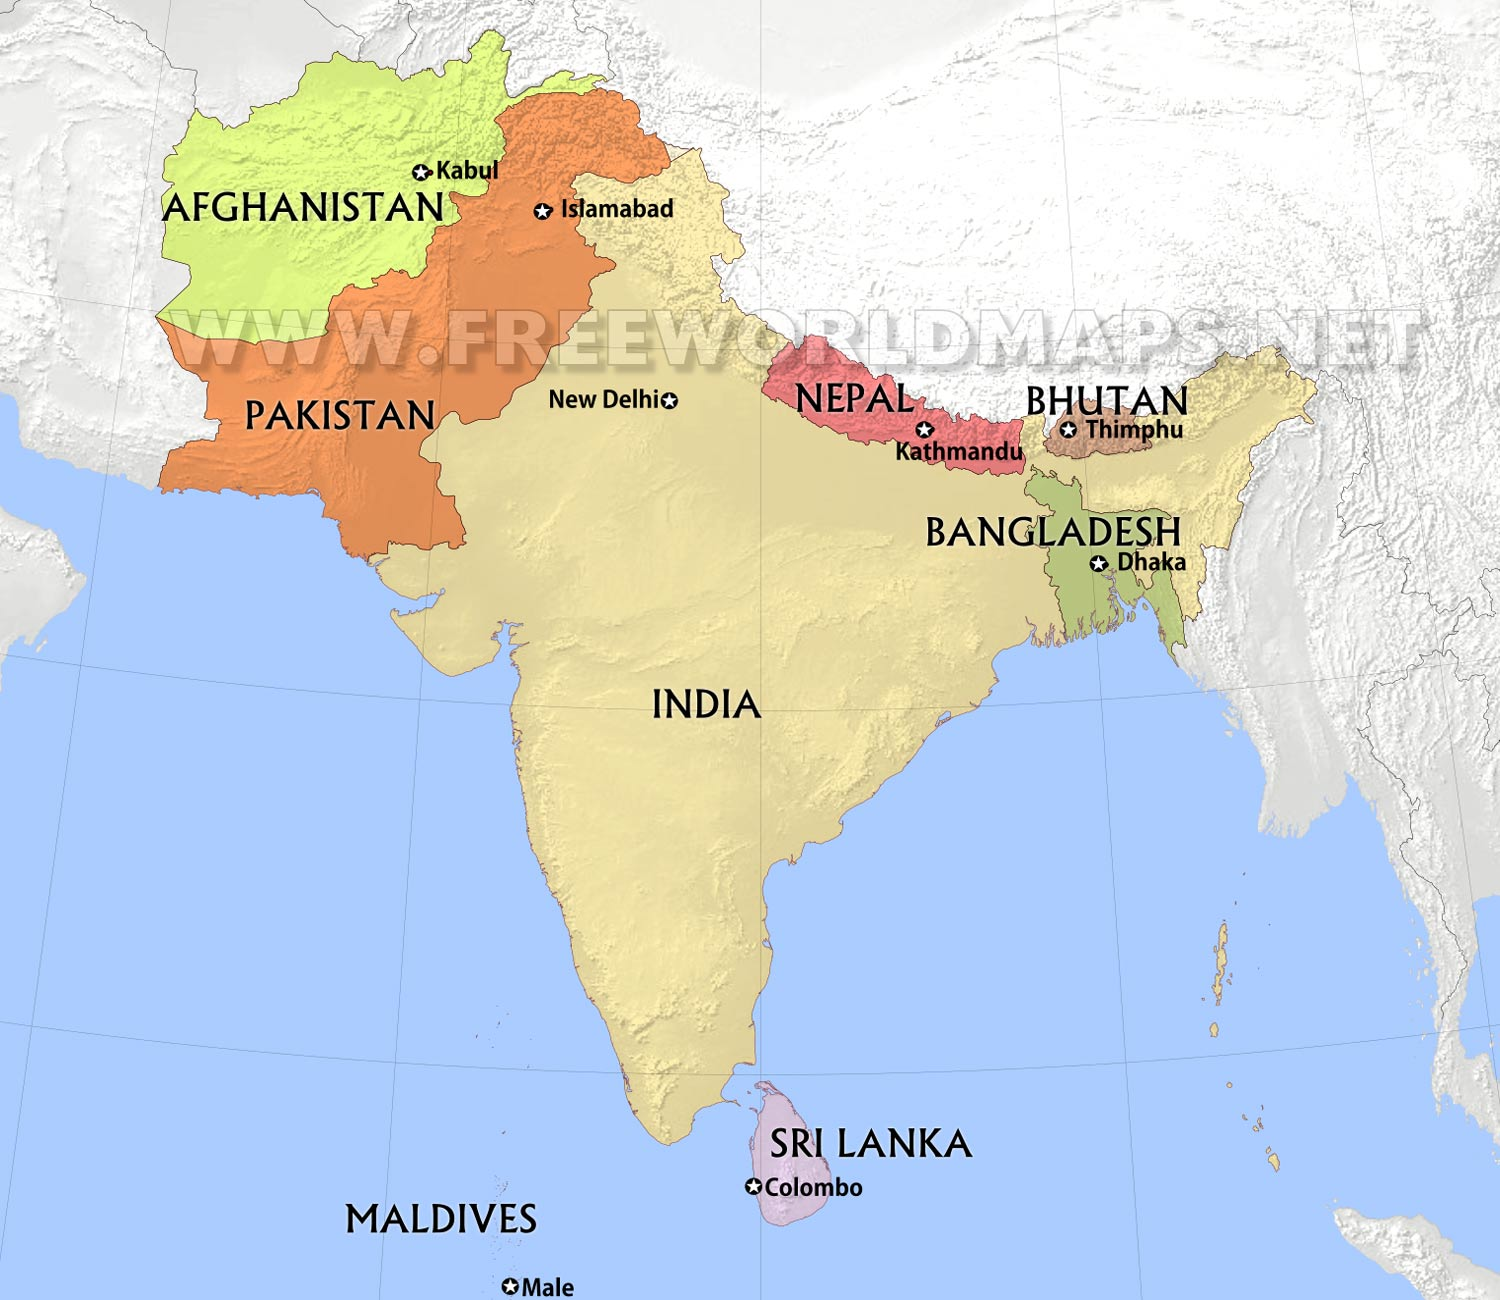 South Asia By Freeworldmapsnet - South asia map